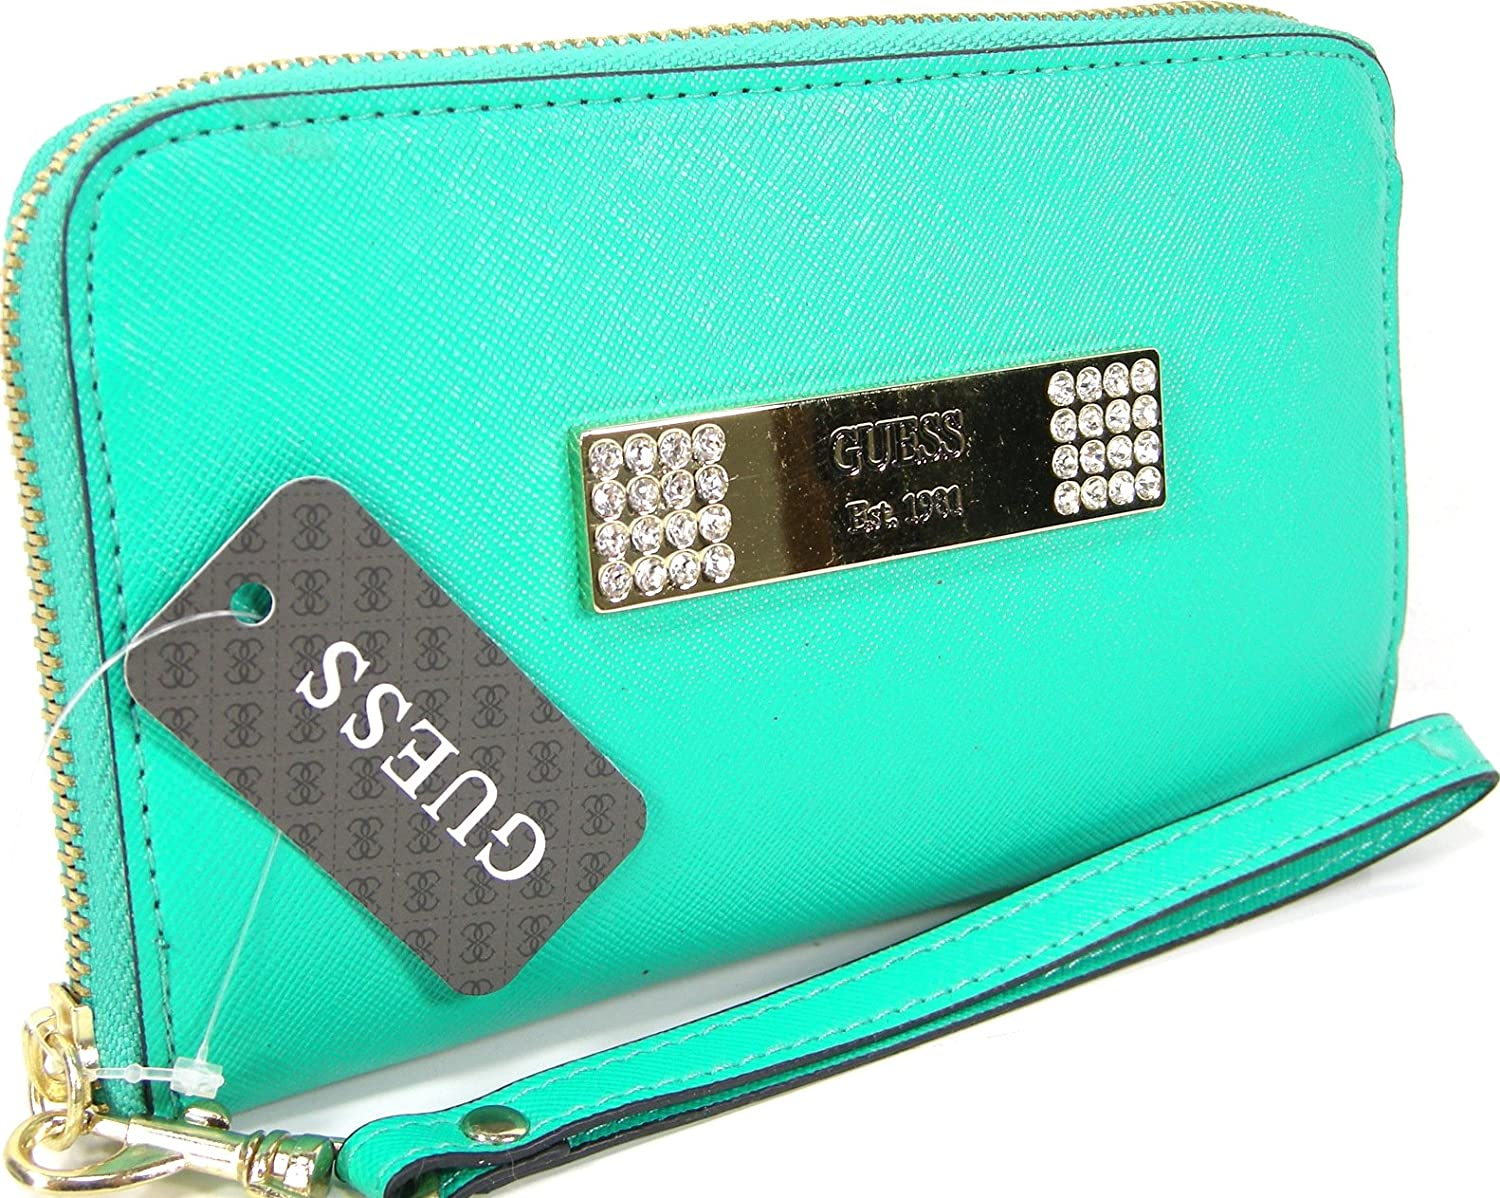 New Guess Logo Wristlet Purse Hand Bag Turquoise Saffiano Cell Phone Case